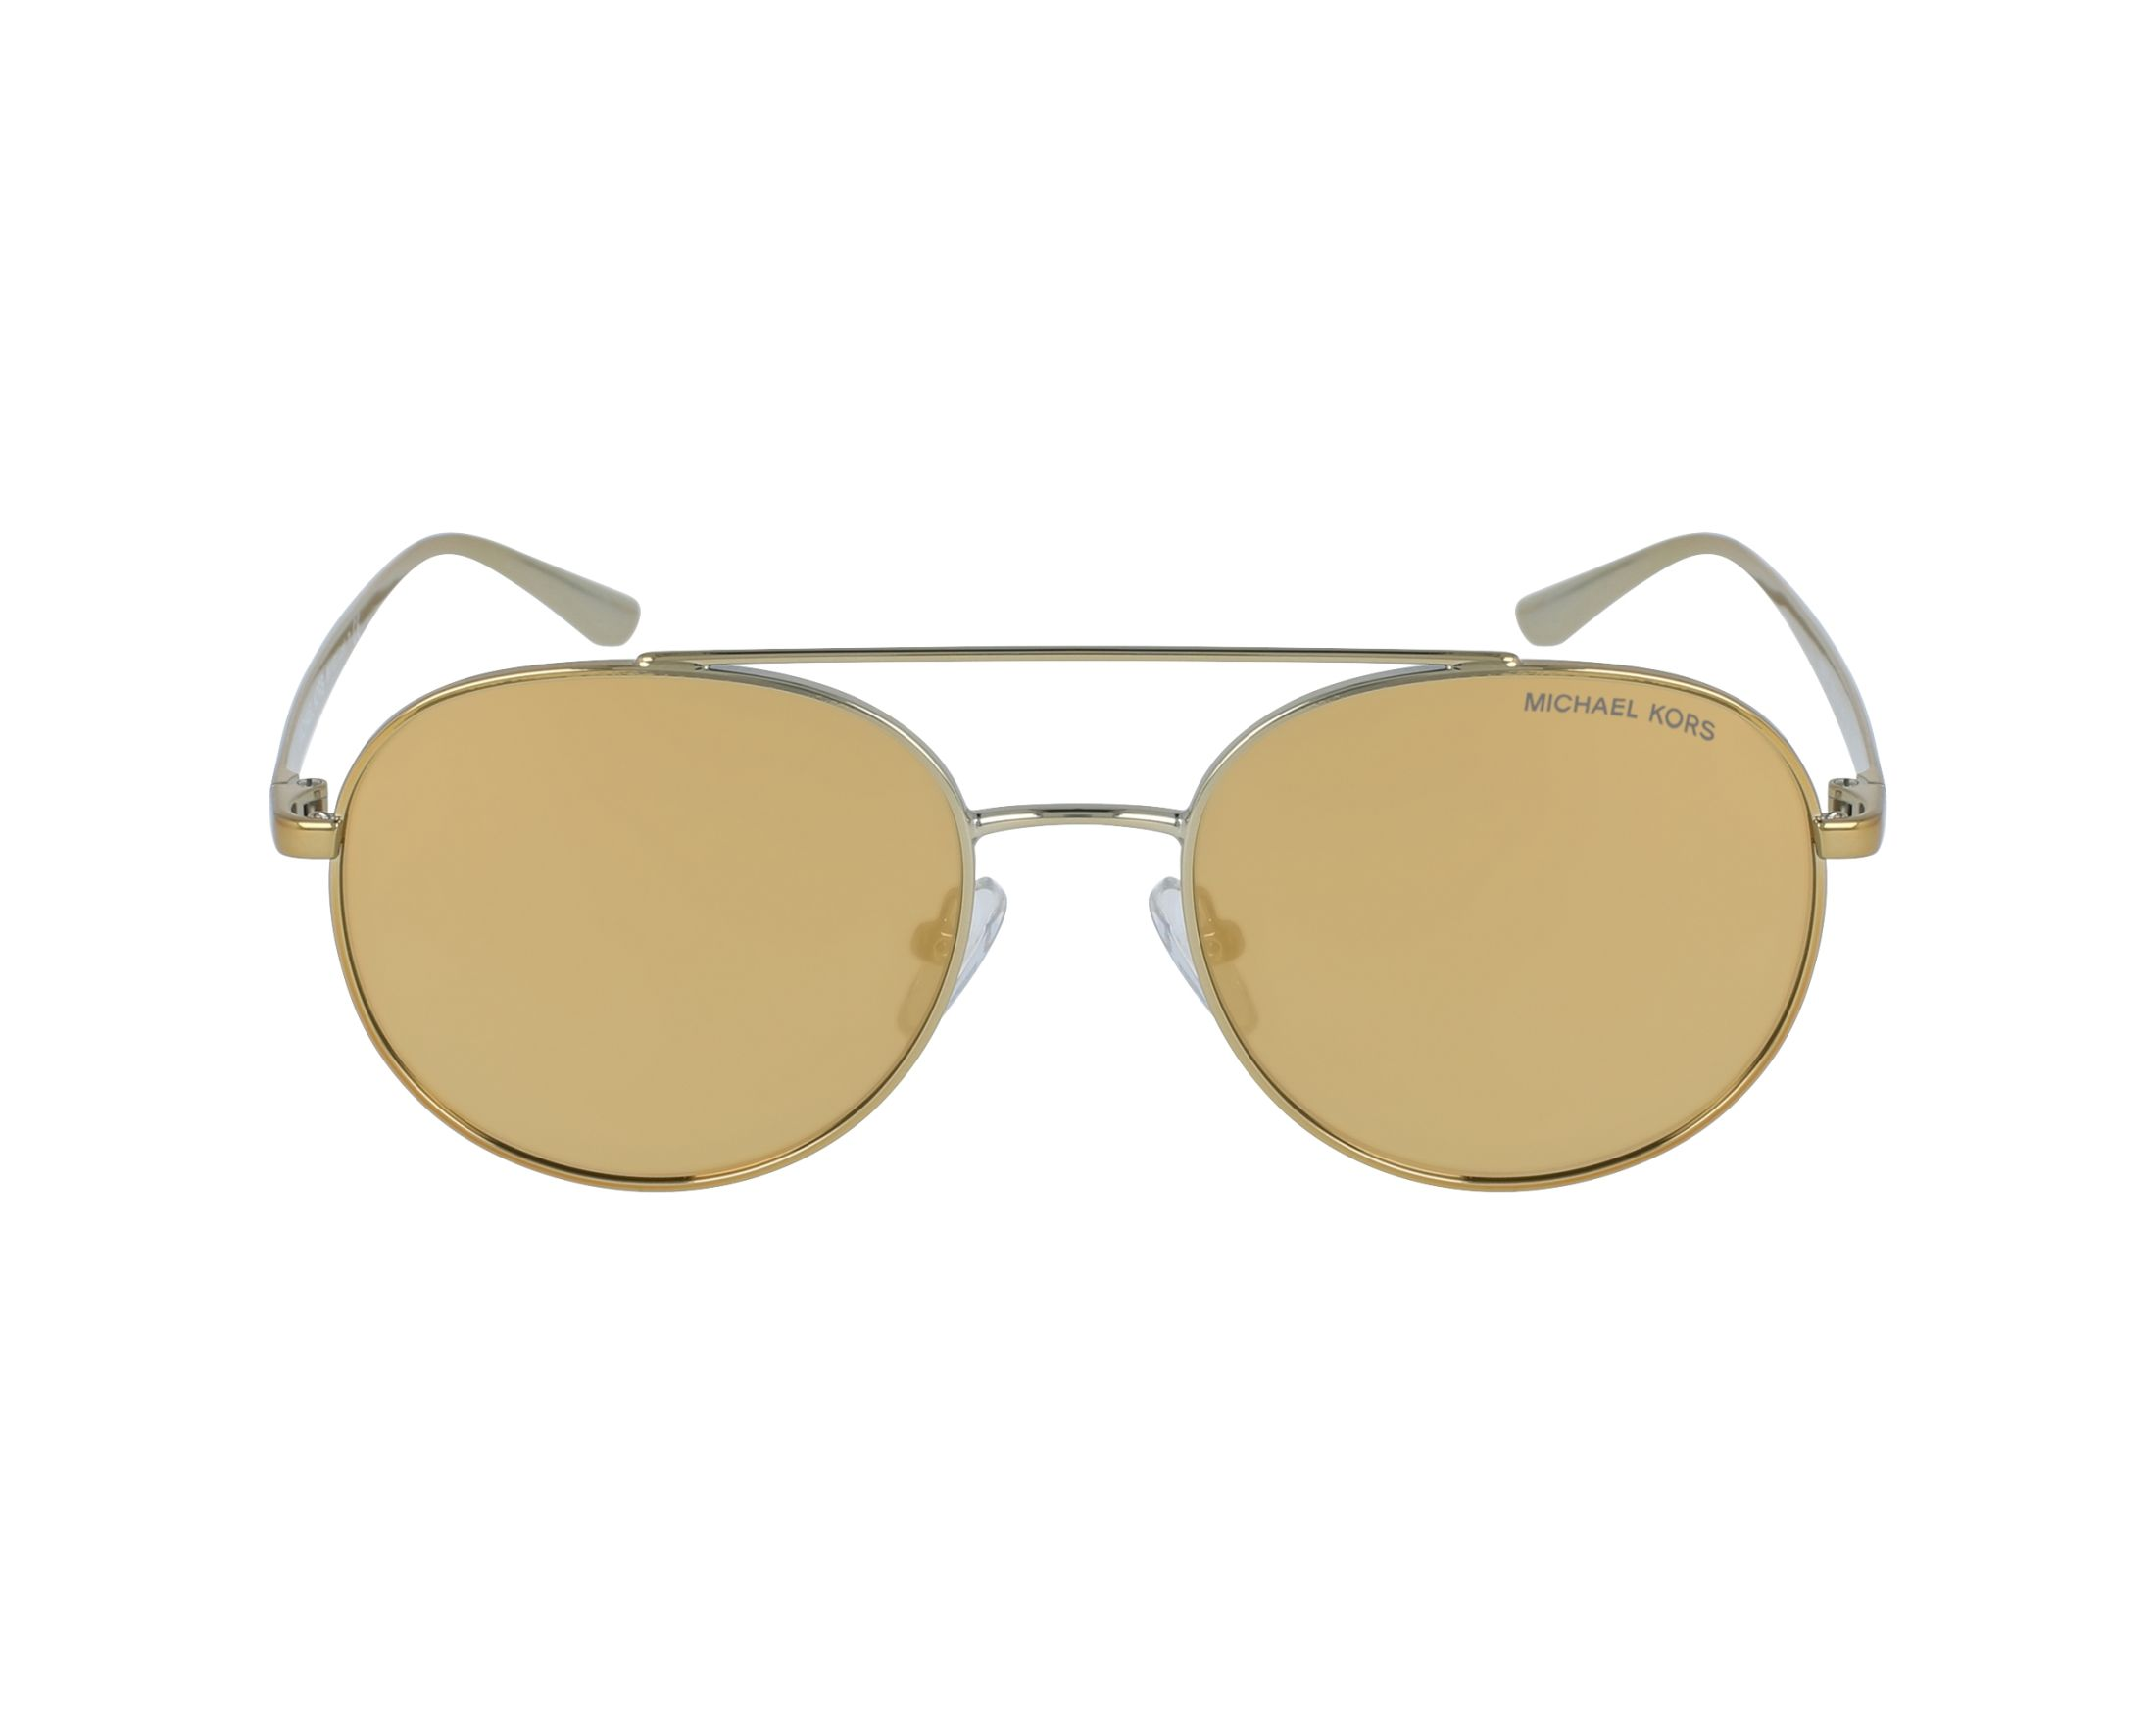 9365e14909b Sunglasses Michael Kors MK-1021 11687P 53-18 Gold profile view